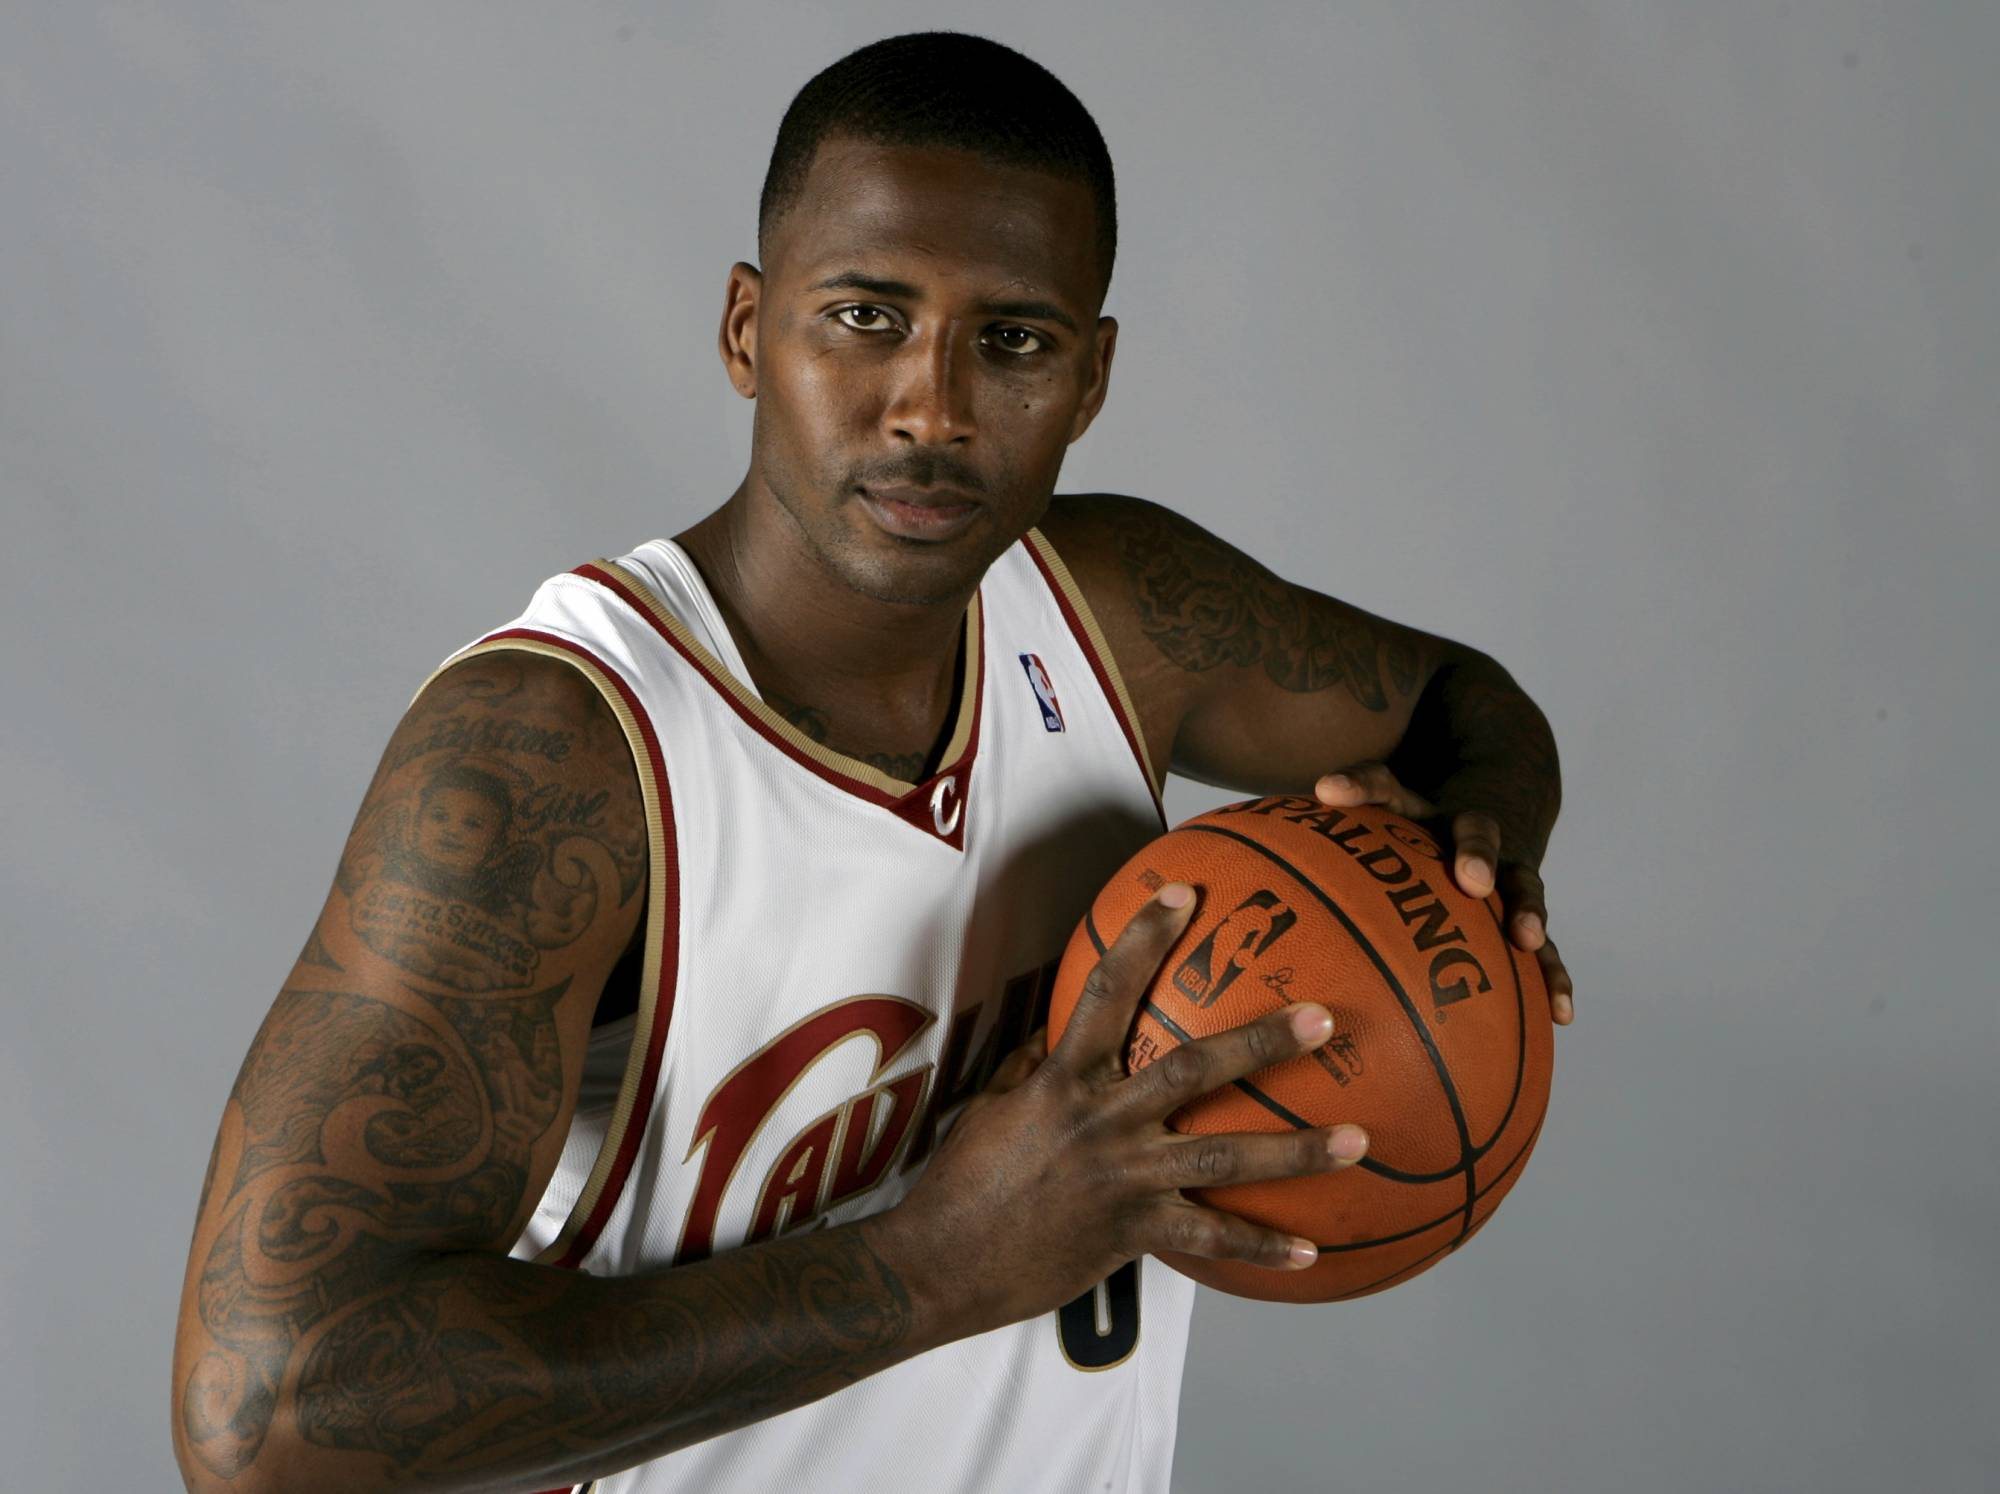 Ex-wife of slain NBA player agrees to face Tennessee charges